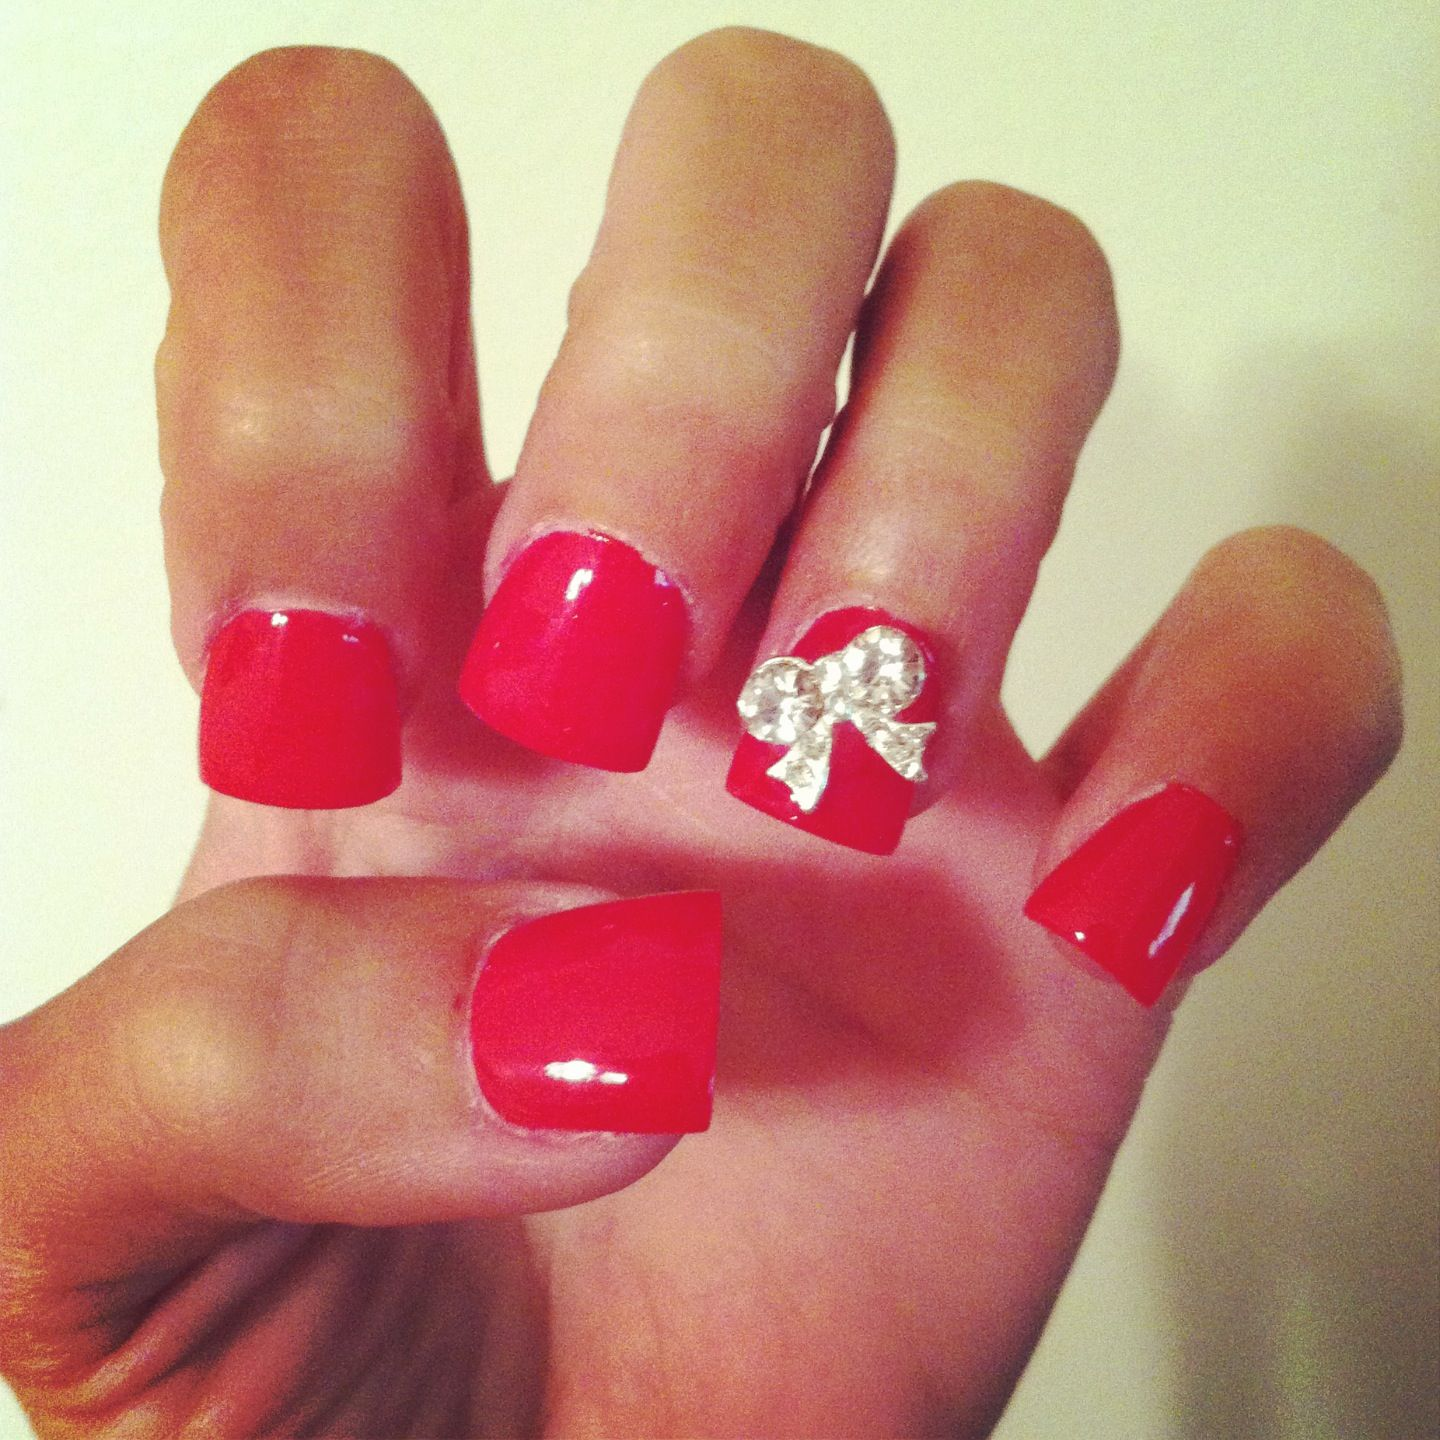 hot pink acrylic flare nails with rhinestone bow on accent nail